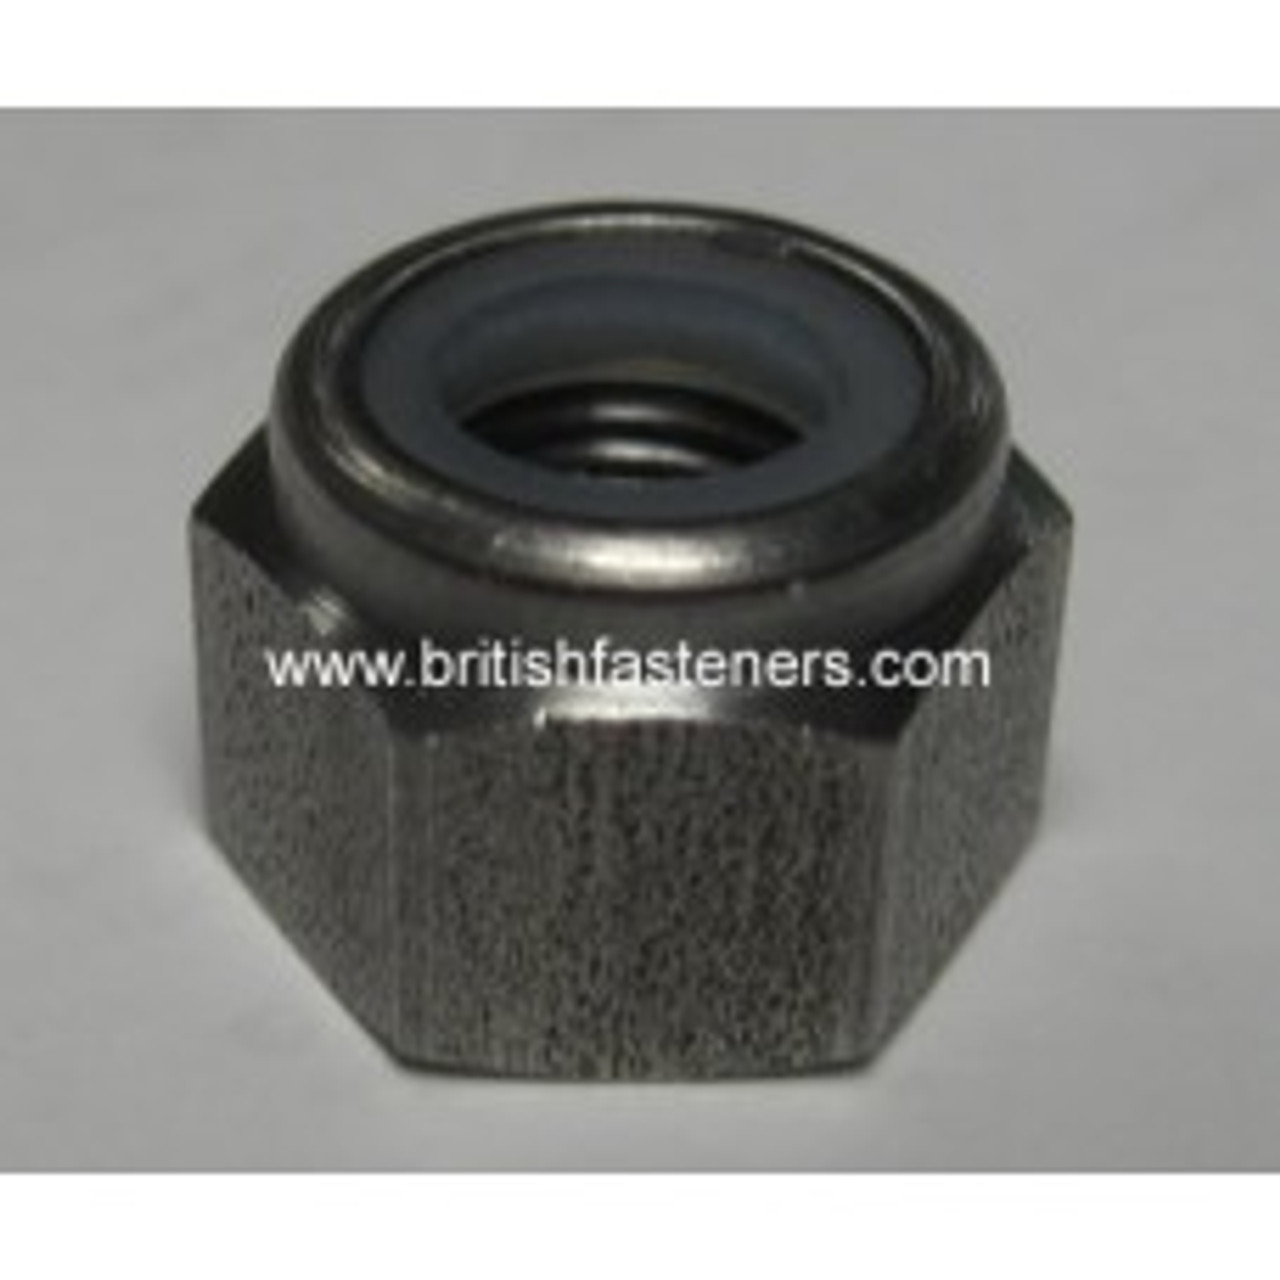 BSC 1/2 - 26 Nylock Nut Stainless